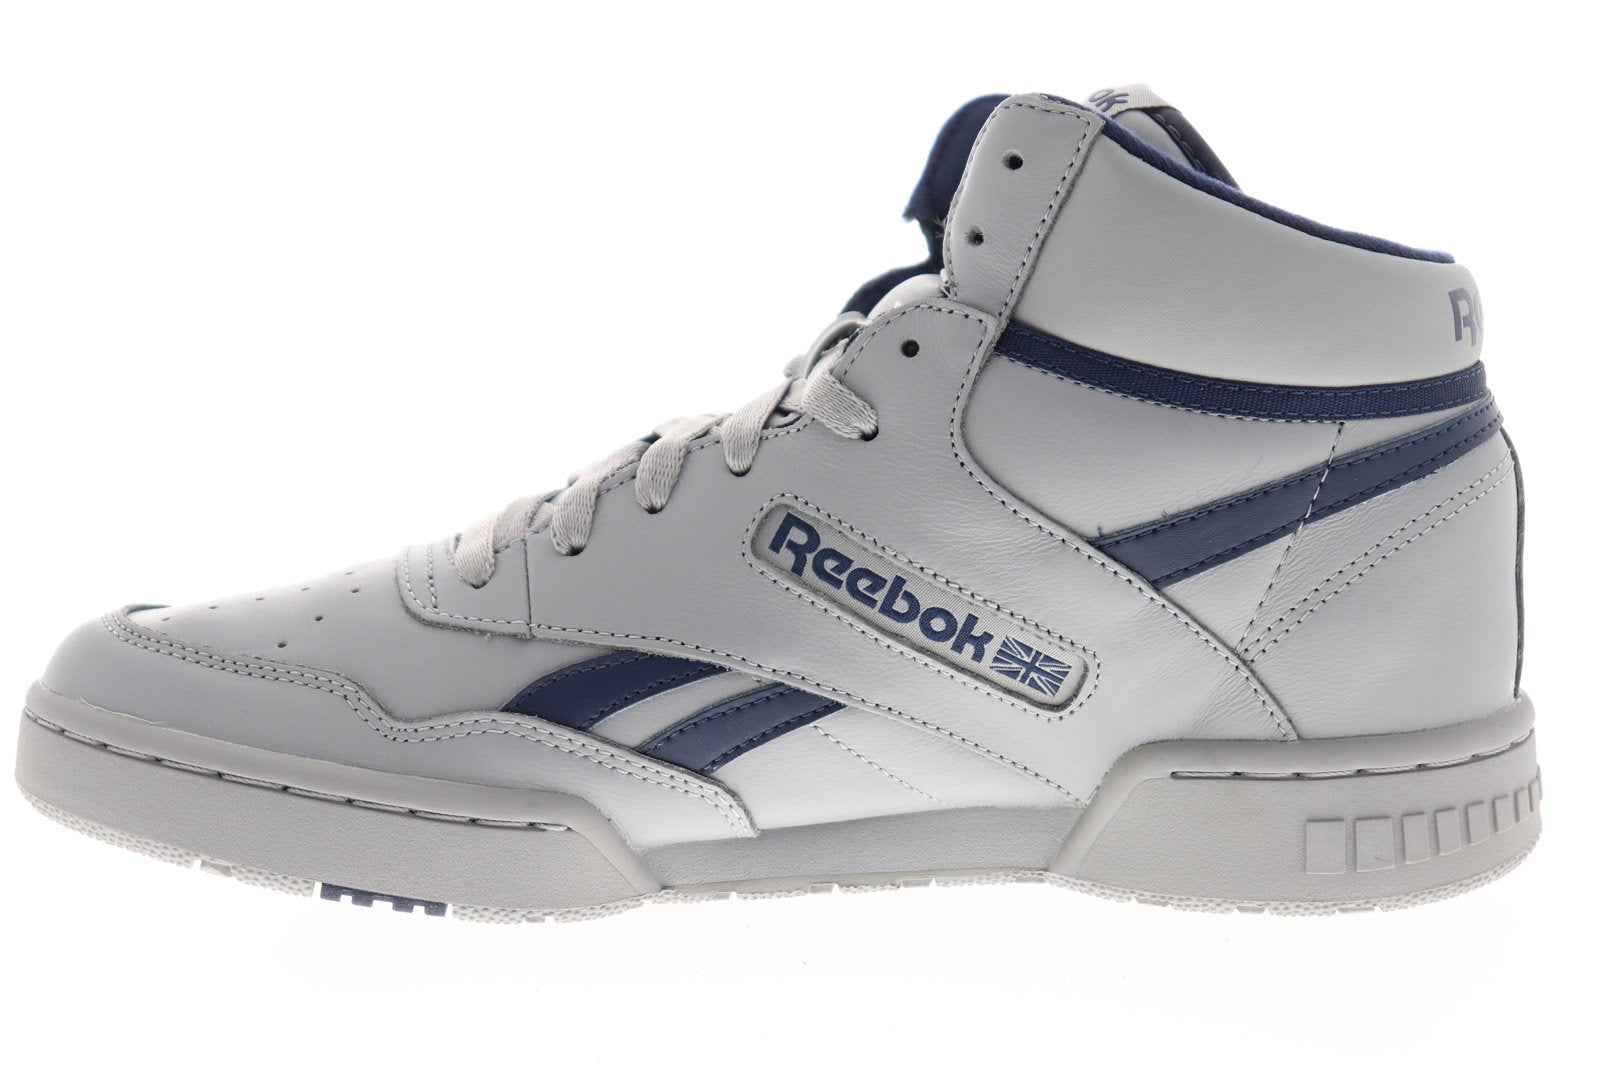 Reebok BB 4600 EH3333 Mens Gray Leather Athletic Lace Up Basketball Shoes 11